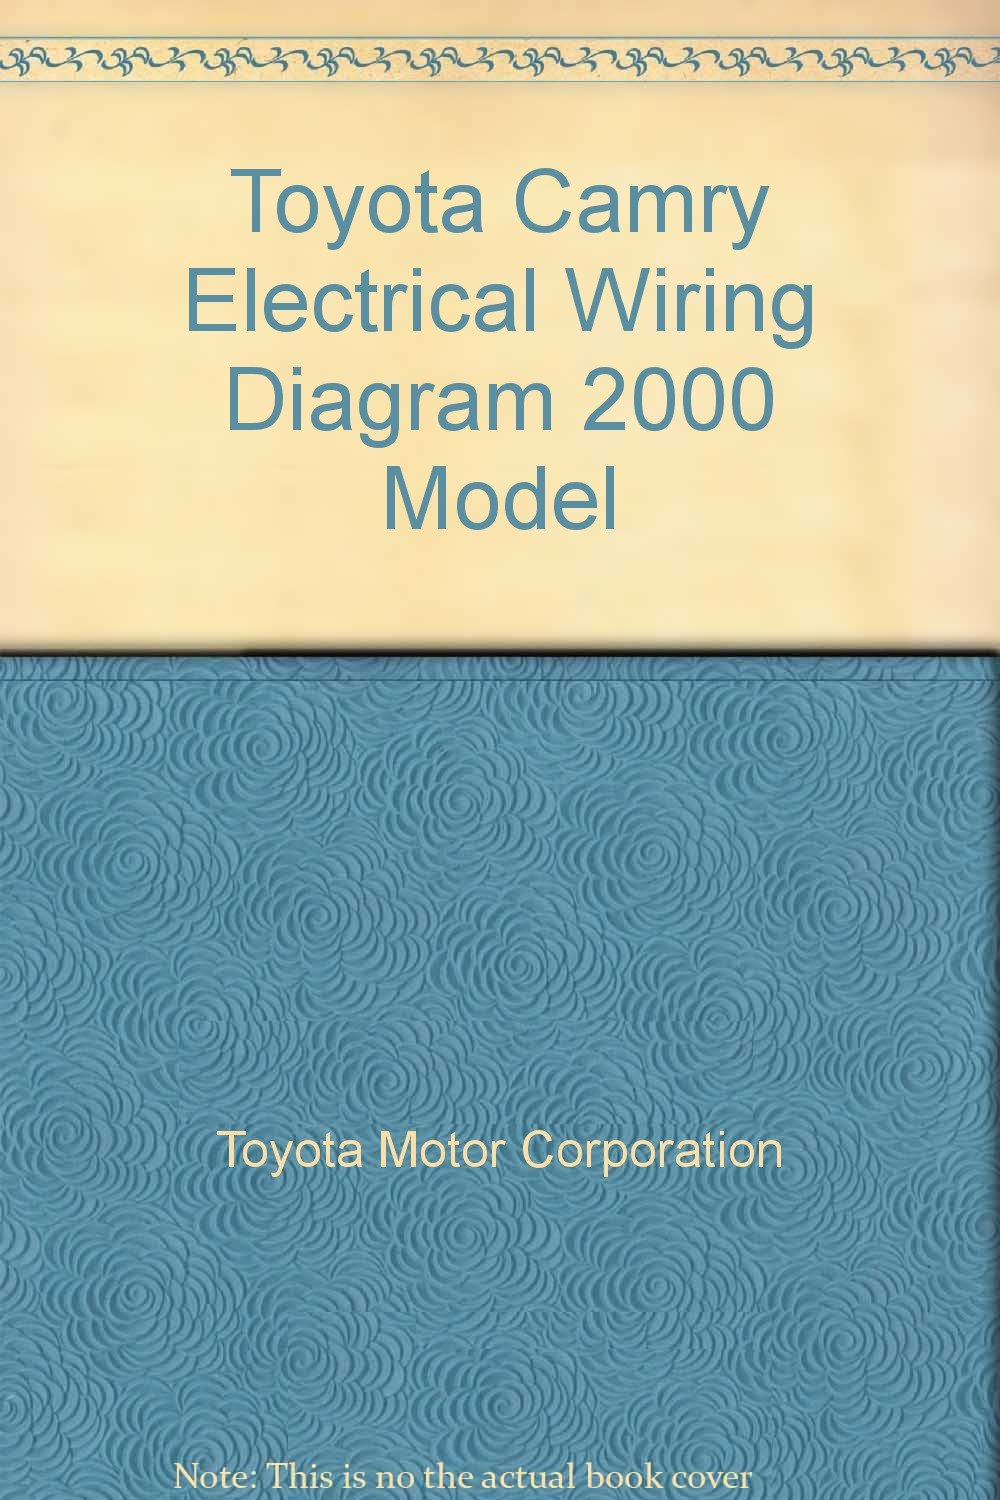 Camry Electrical Wiring Diagram on 2000 camry repair manual, 2000 camry transmission, 2000 camry engine, toyota electrical wiring diagram,